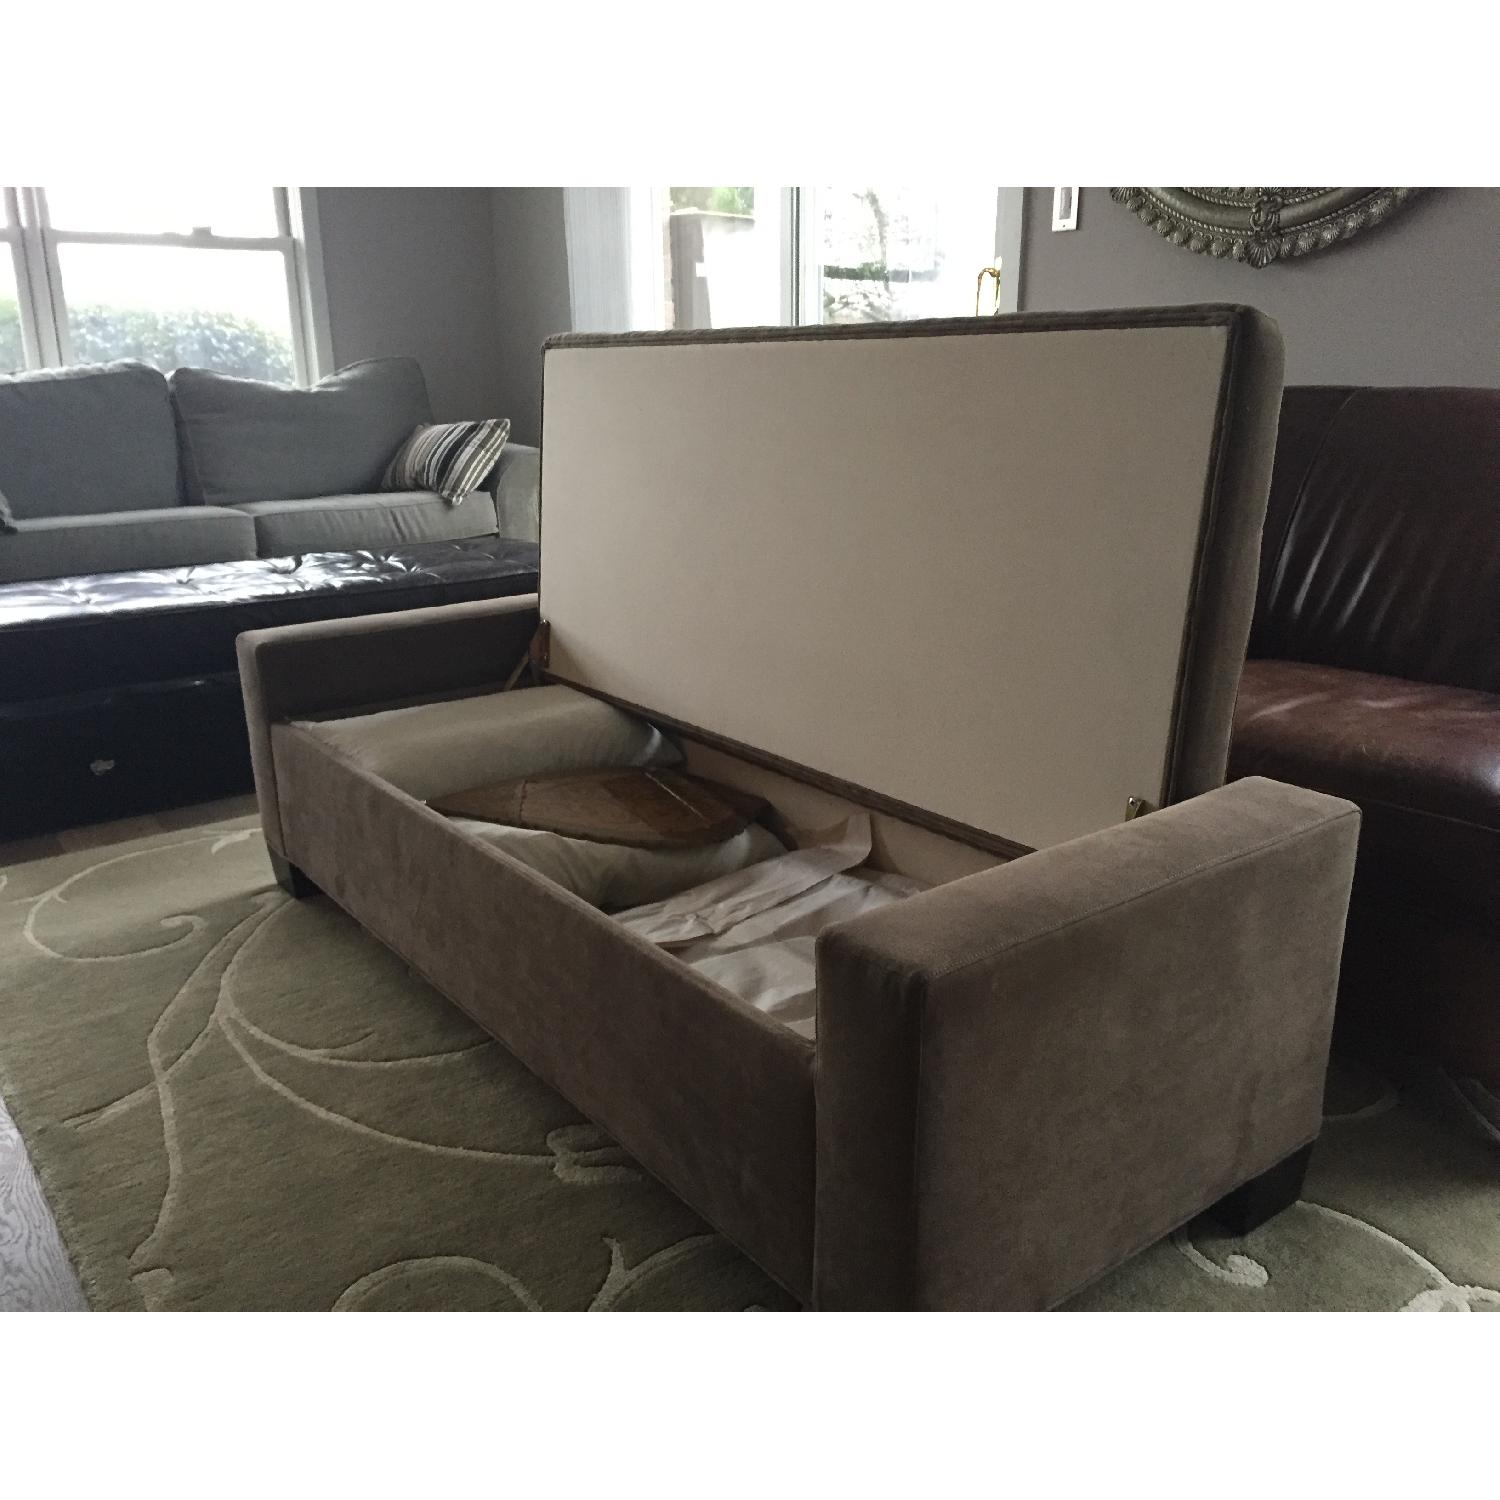 Crate & Barrel Brown Tufted Daybed/Storage Bench-0